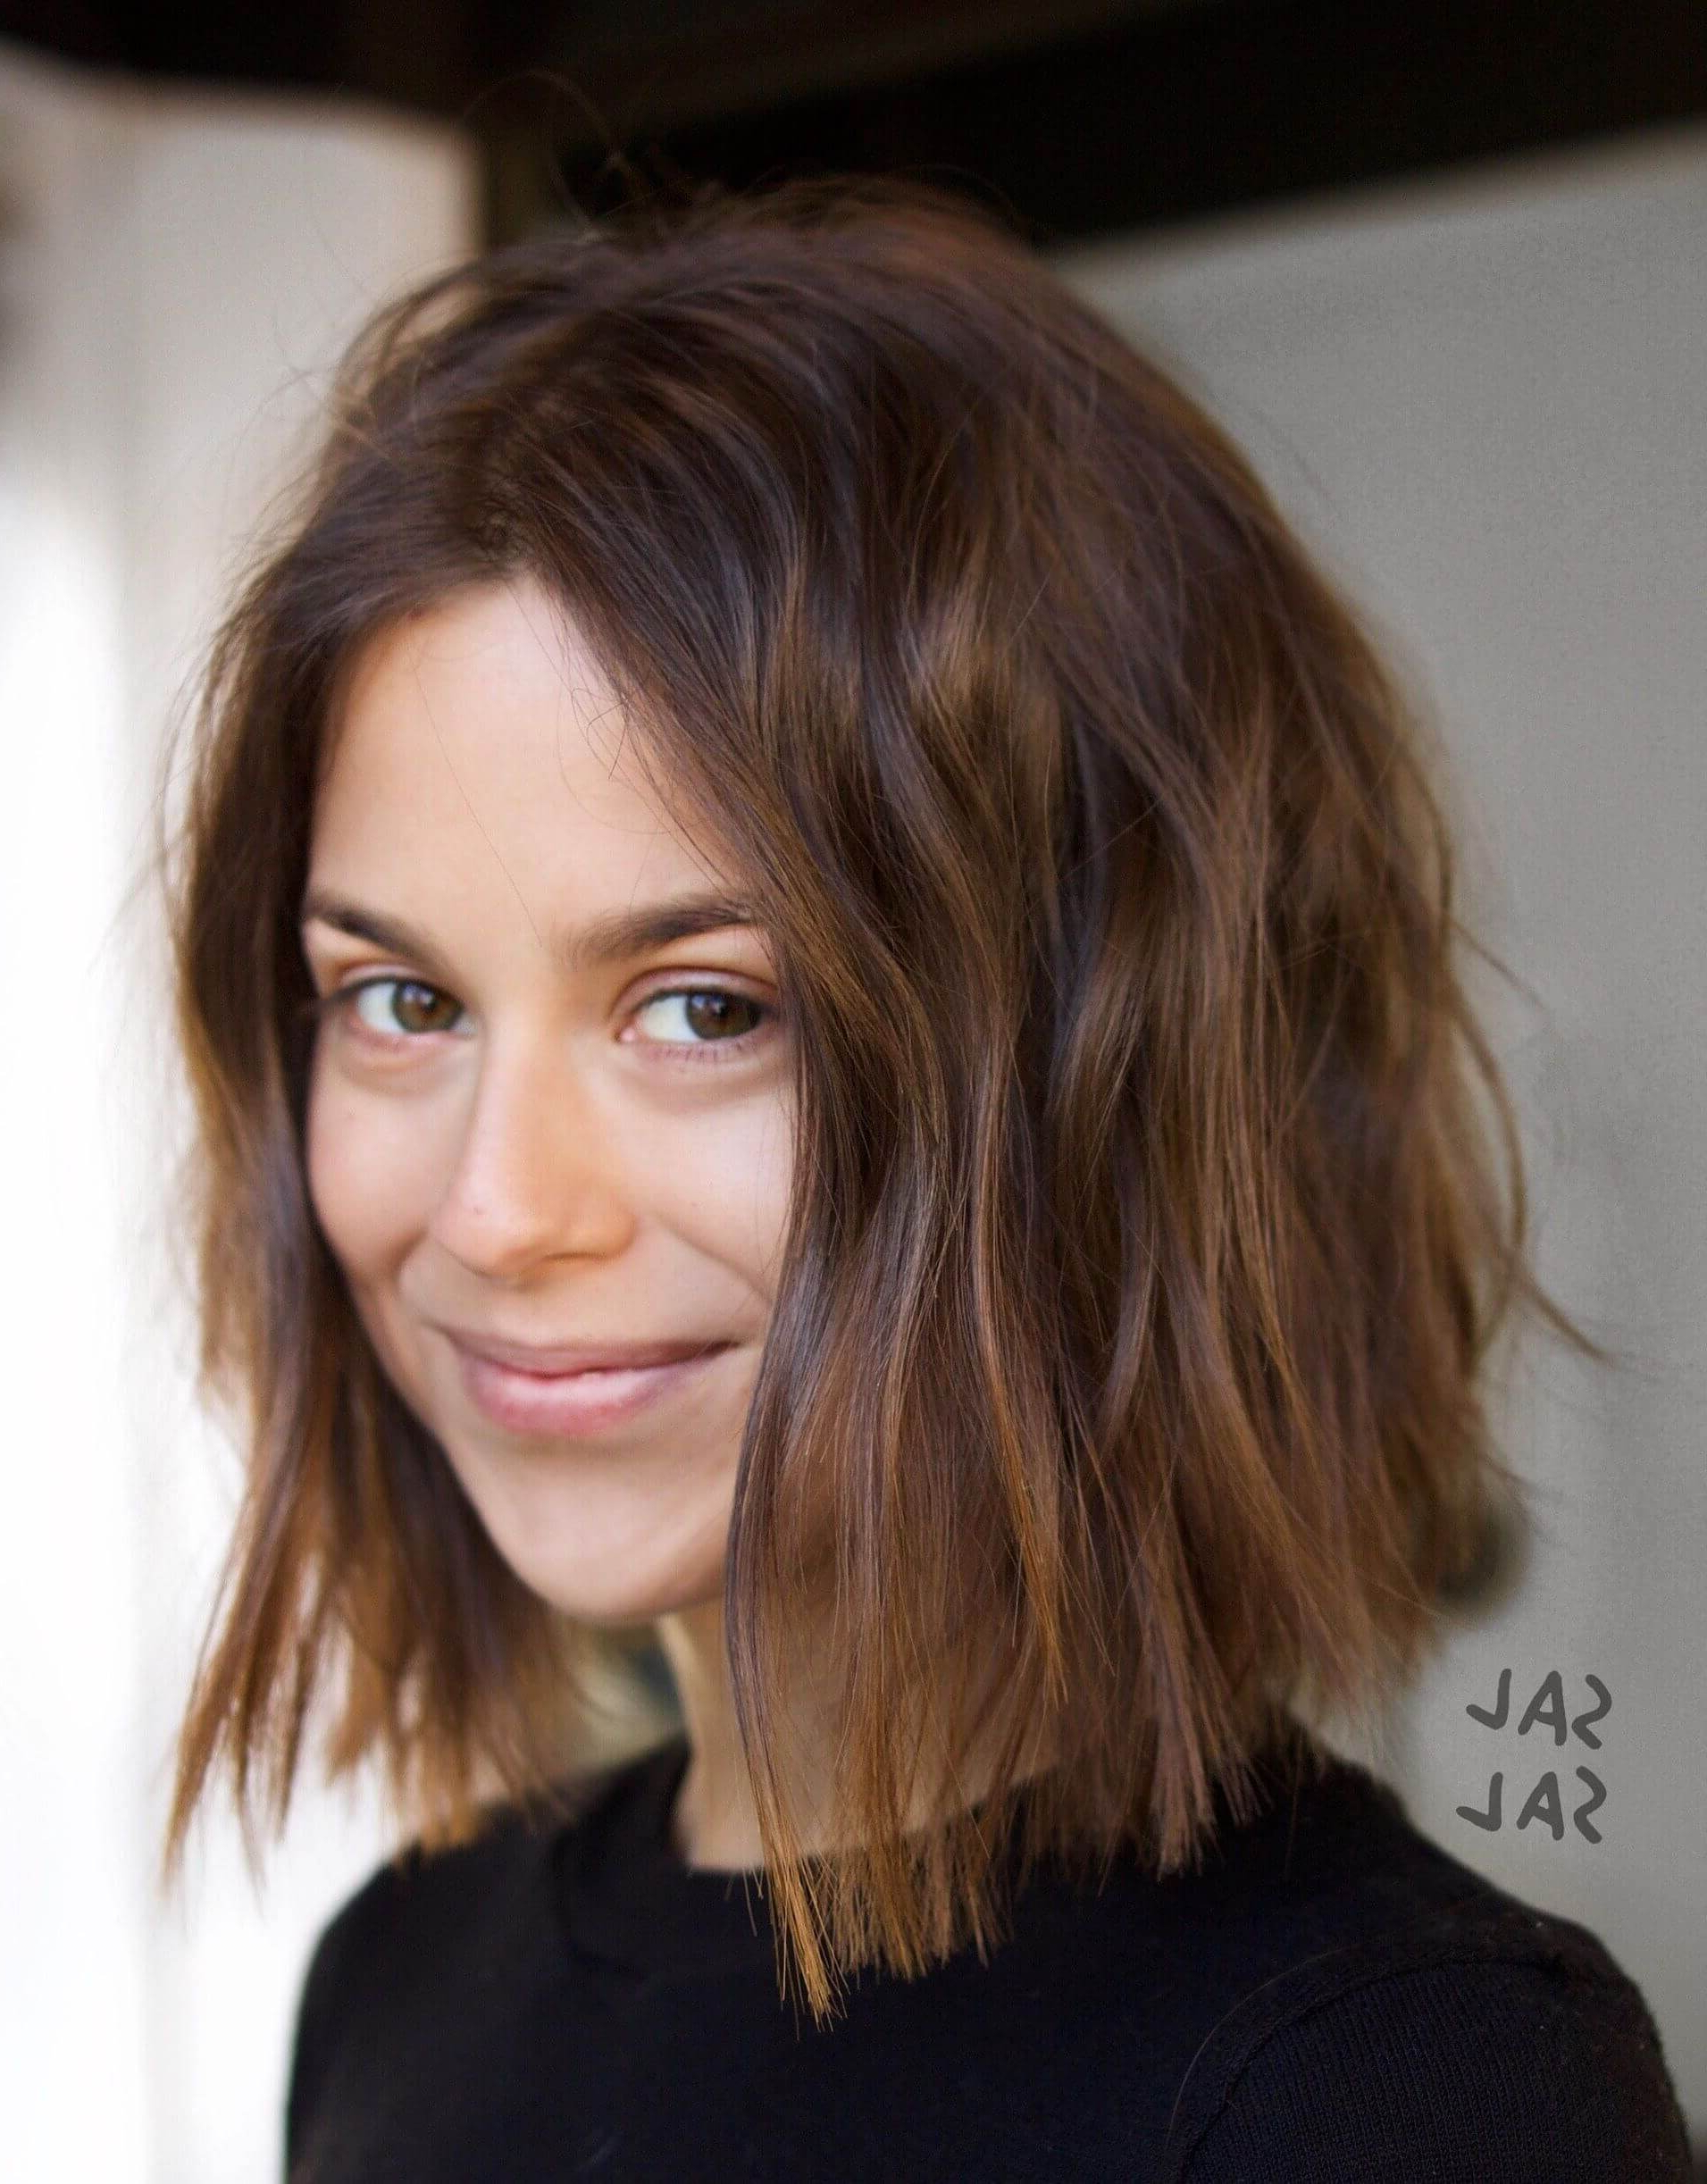 25 Blunt Bob Haircuts – Hairstyles That Are Timeless With A Intended For Widely Used Blunt Bob Hairstyles (View 2 of 20)